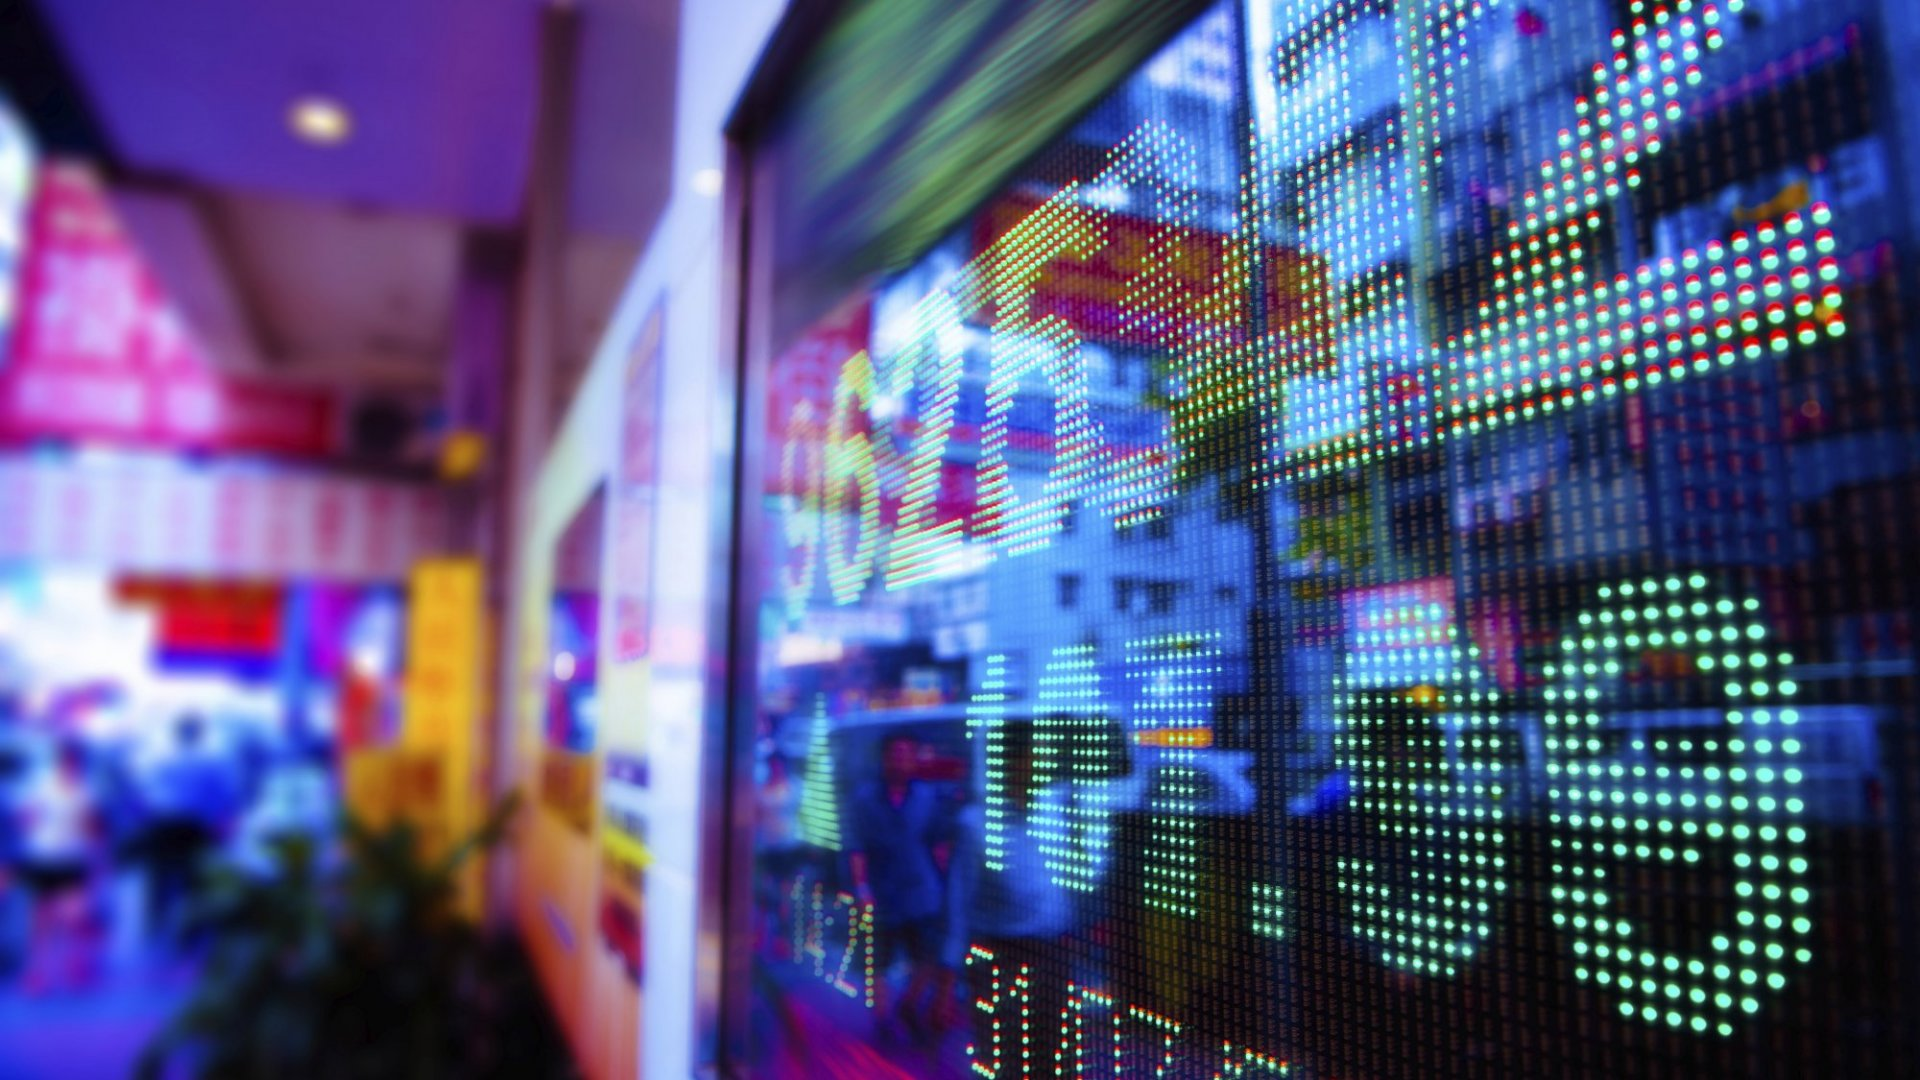 What You Can Learn About Starting a Business From the Fintech Industry